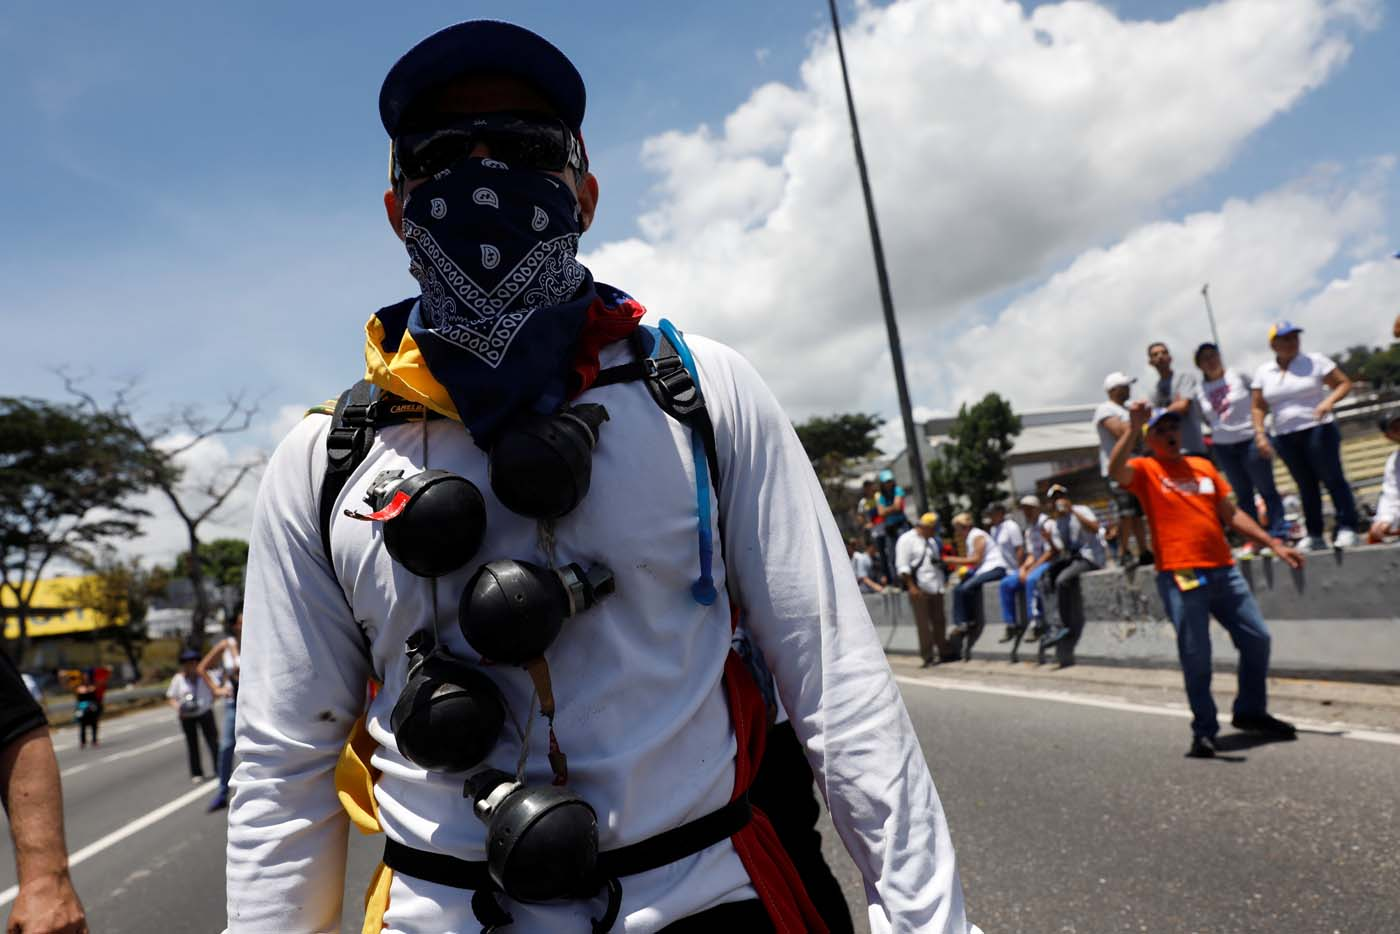 An opposition supporter rallies against President Nicolas Maduro with used tear gas grenades tied around his neck in Caracas, Venezuela, May 20, 2017. REUTERS/Carlos Garcia Rawlins